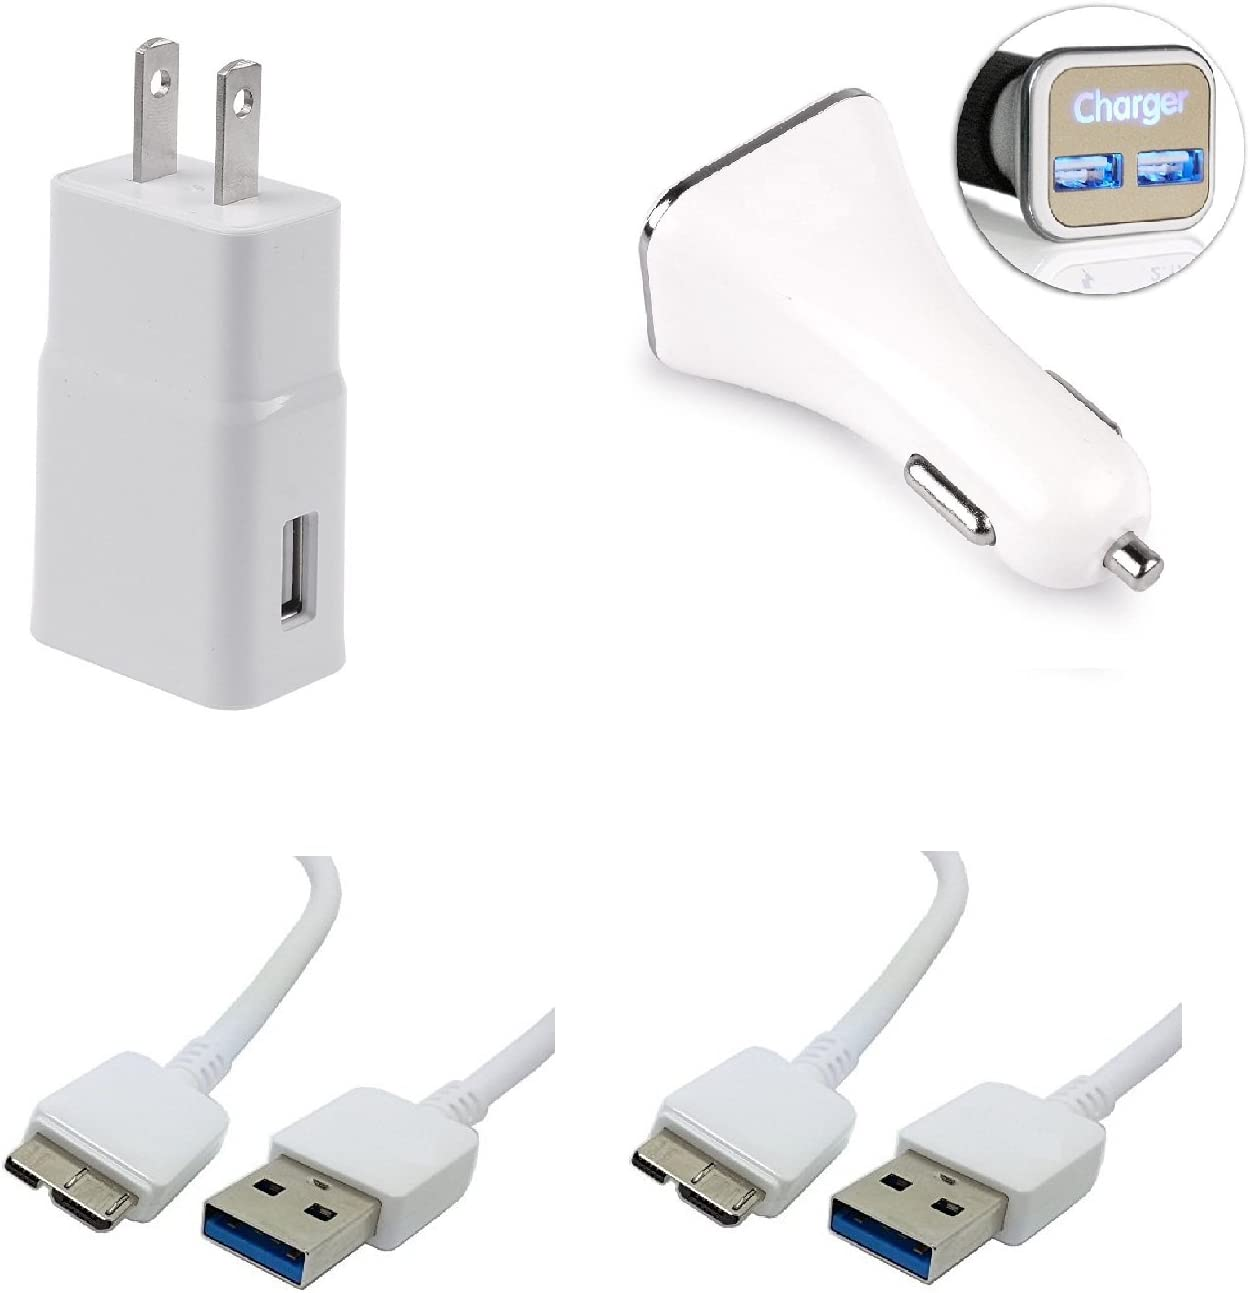 Galaxy S5 and Note 3 for Samsung Charger Micro USB 3.0 Cable Kit by RKINC [Wall Charger + Car Charger + 2 Cables] Adaptive Charging uses Dual voltages ...